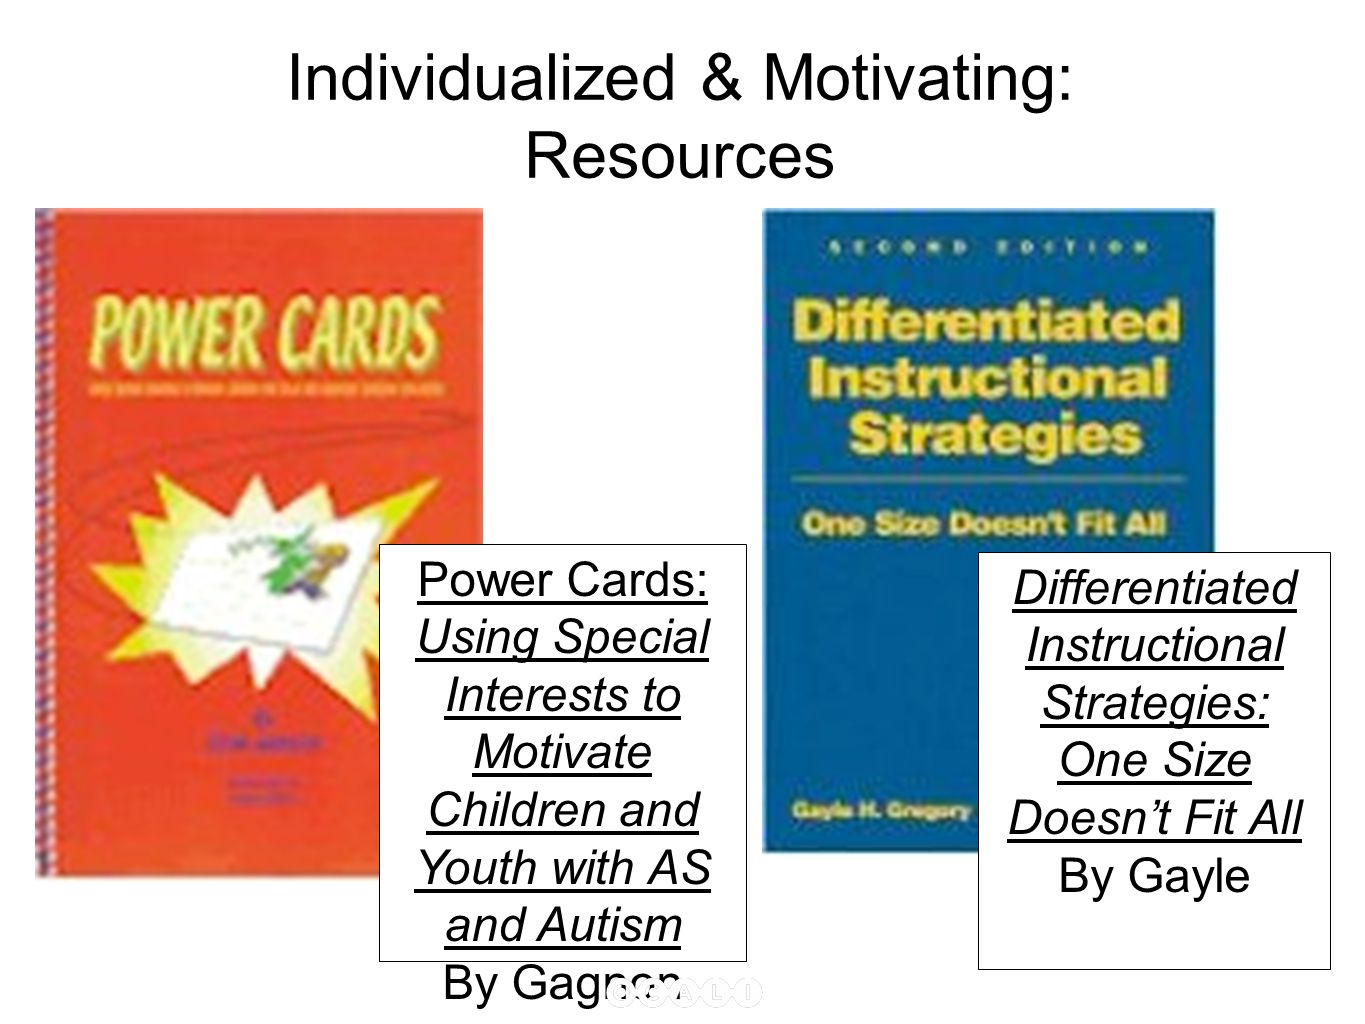 Individualized & Motivating: Resources Power Cards: Using Special Interests to Motivate Children and Youth with AS and Autism By Gagnon Differentiated